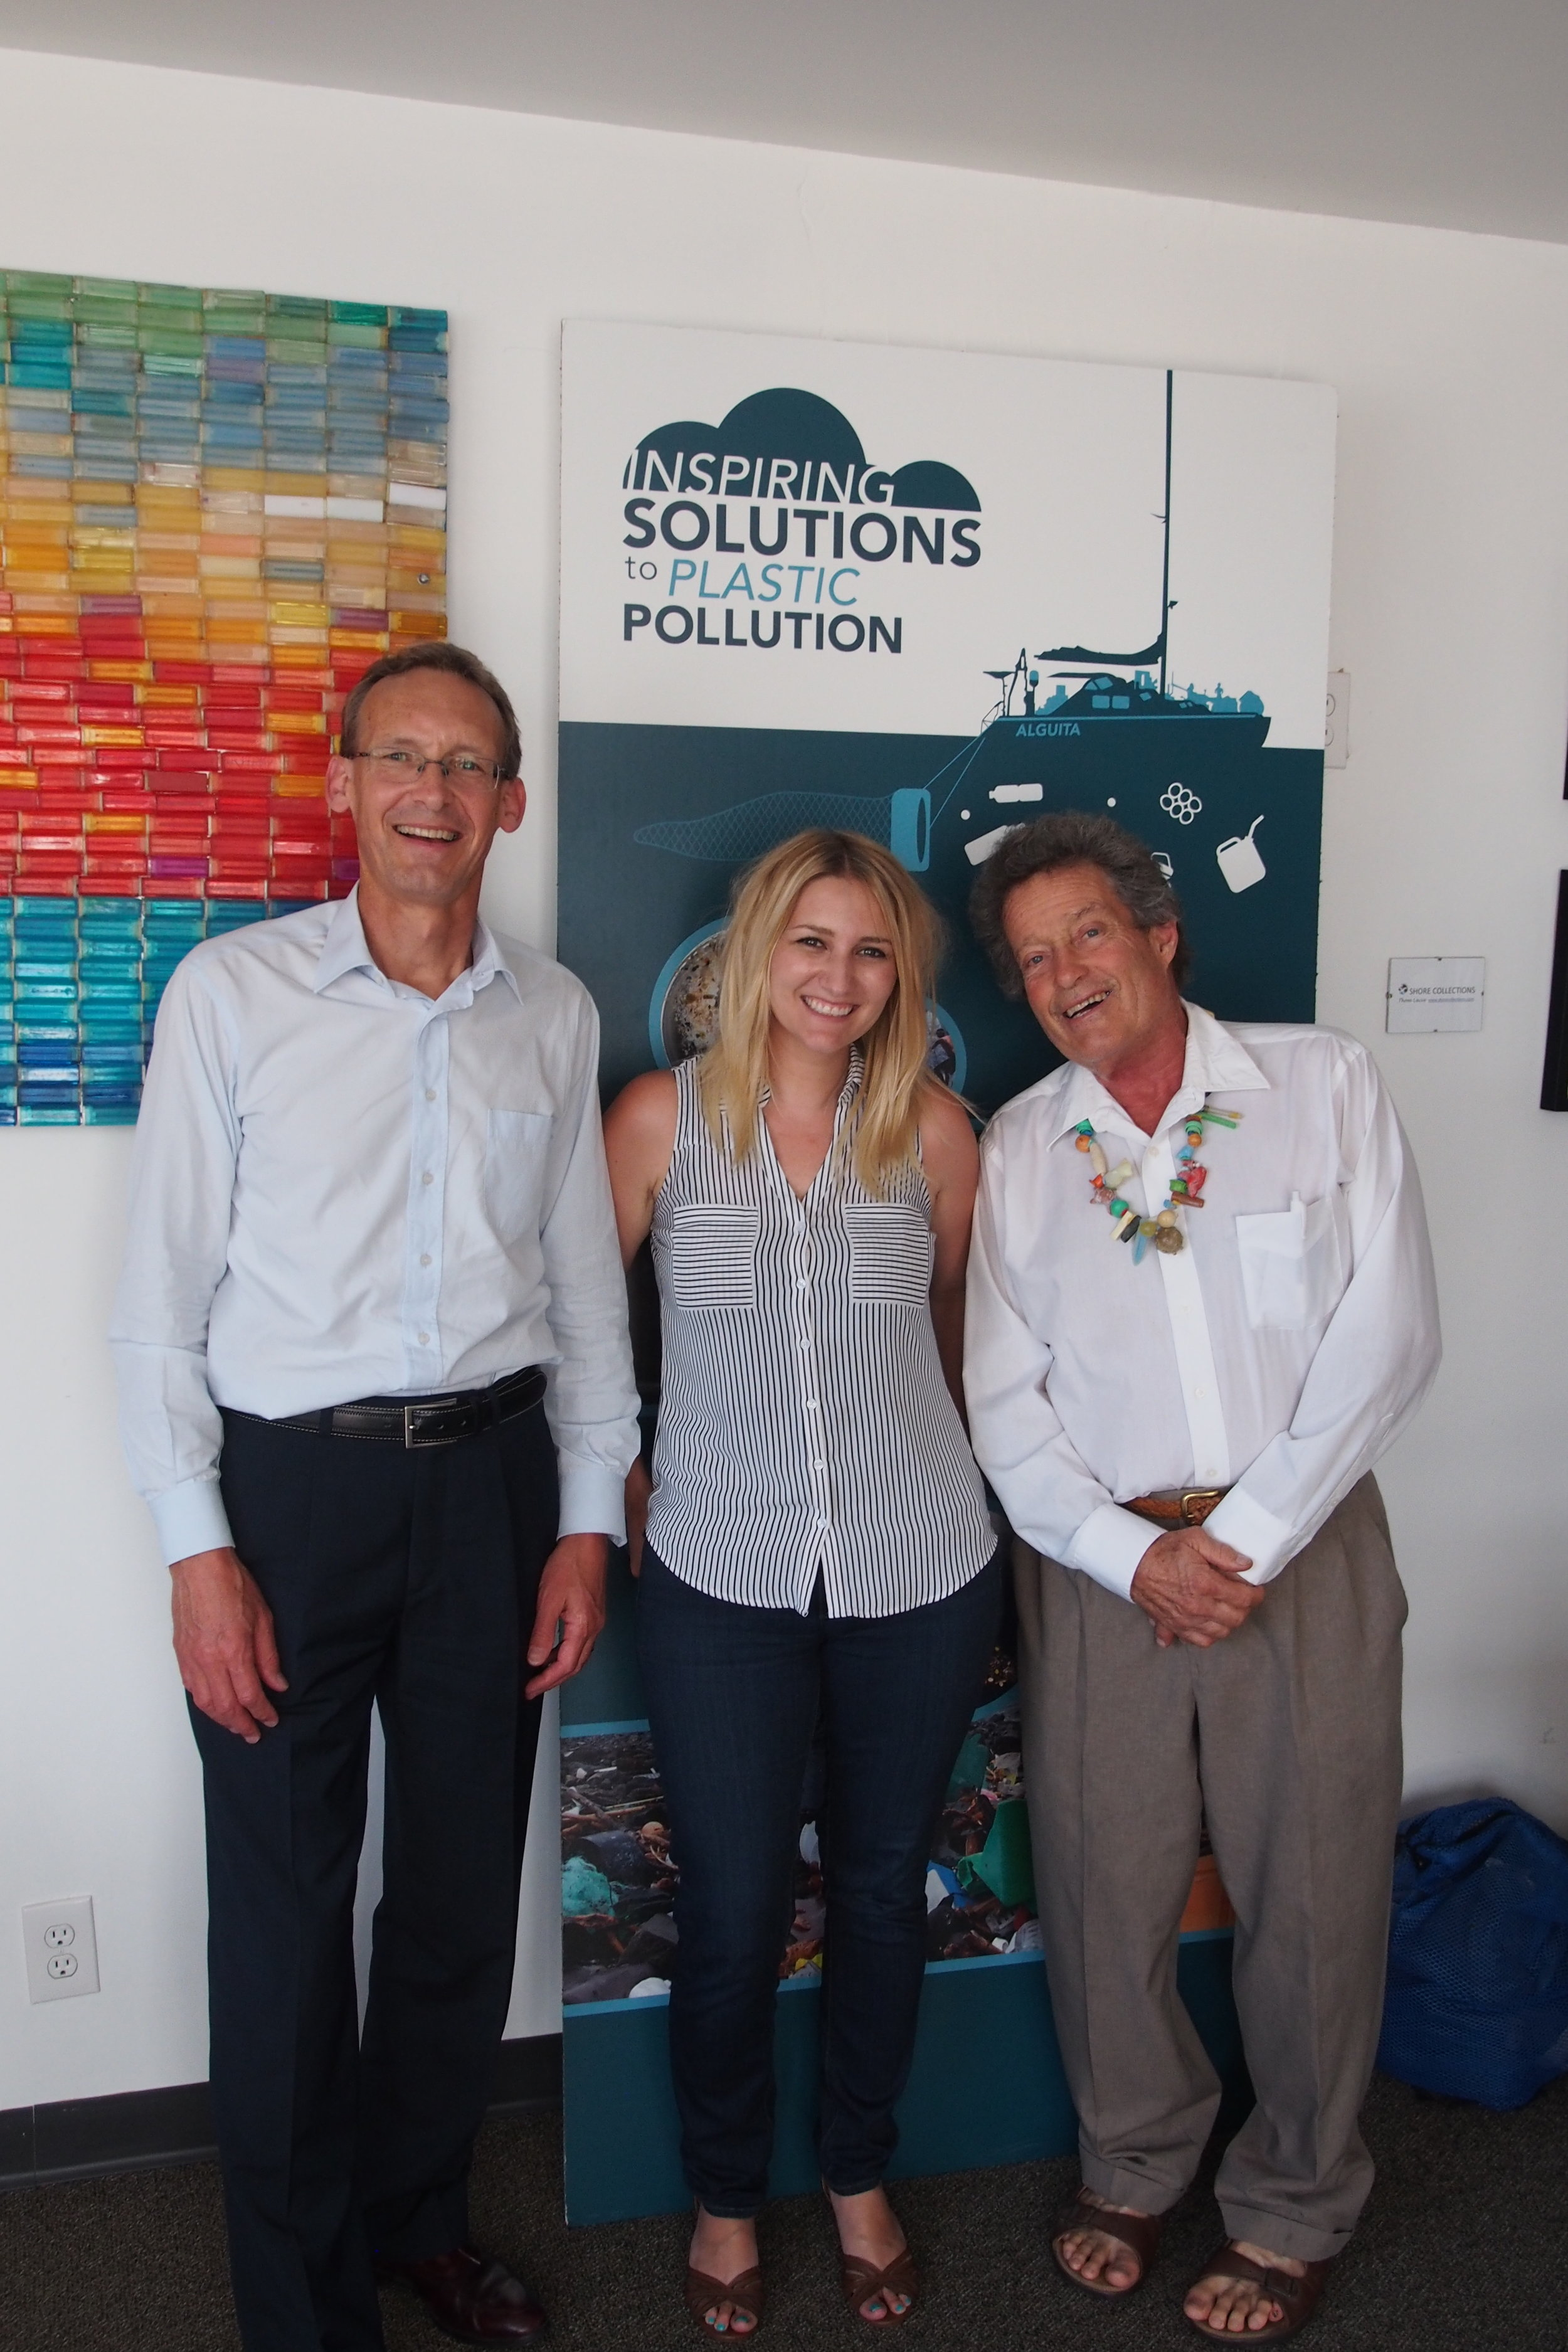 Alga;ita Capt Moore and Katie Allen with Maui's Ark Founder Stephen Harris